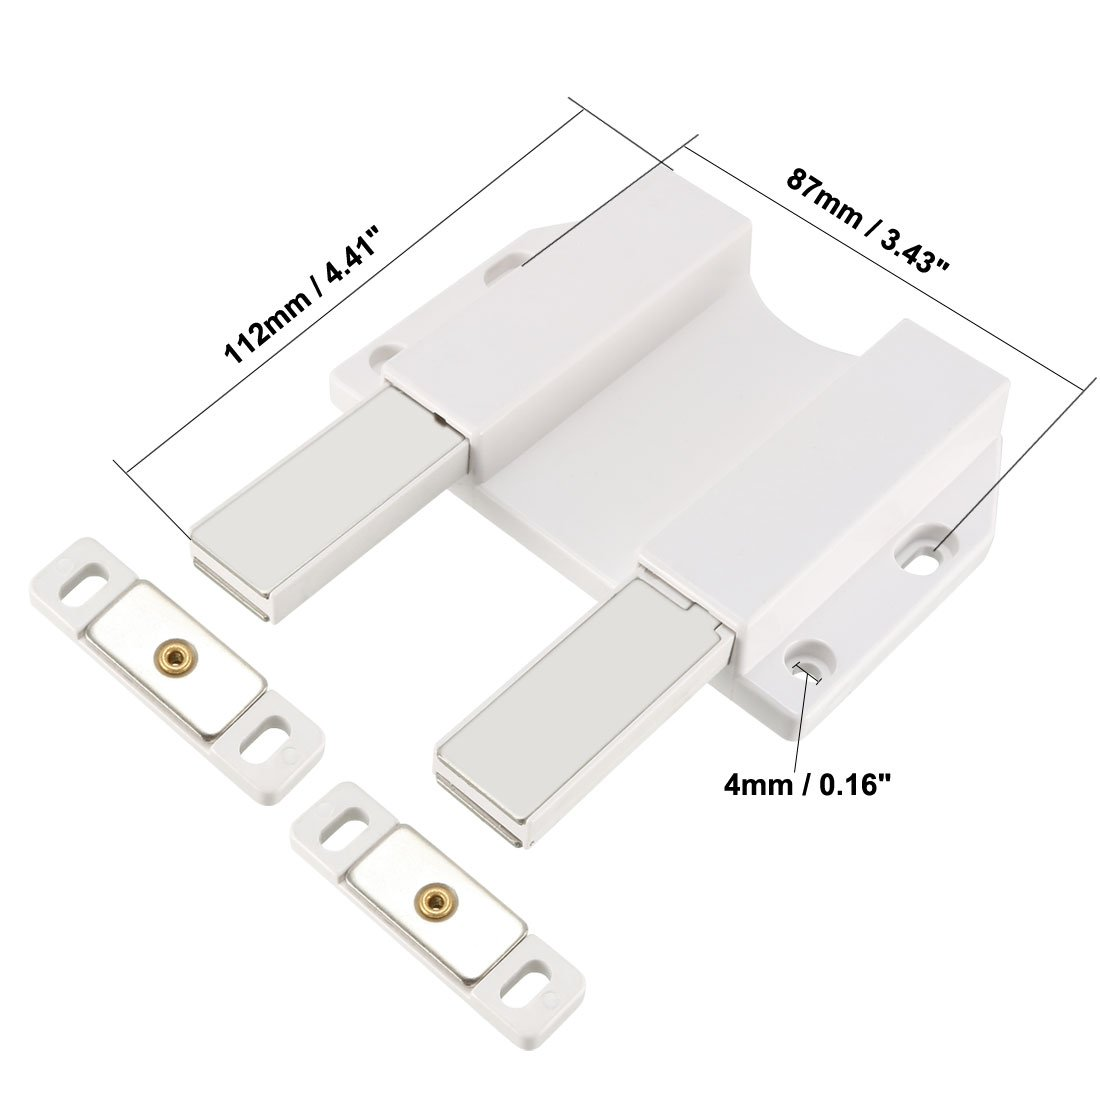 uxcell 5-8mm Glass Door Magnetic Touch Catch Latch Closure Plastic White with Clamp 2 Set